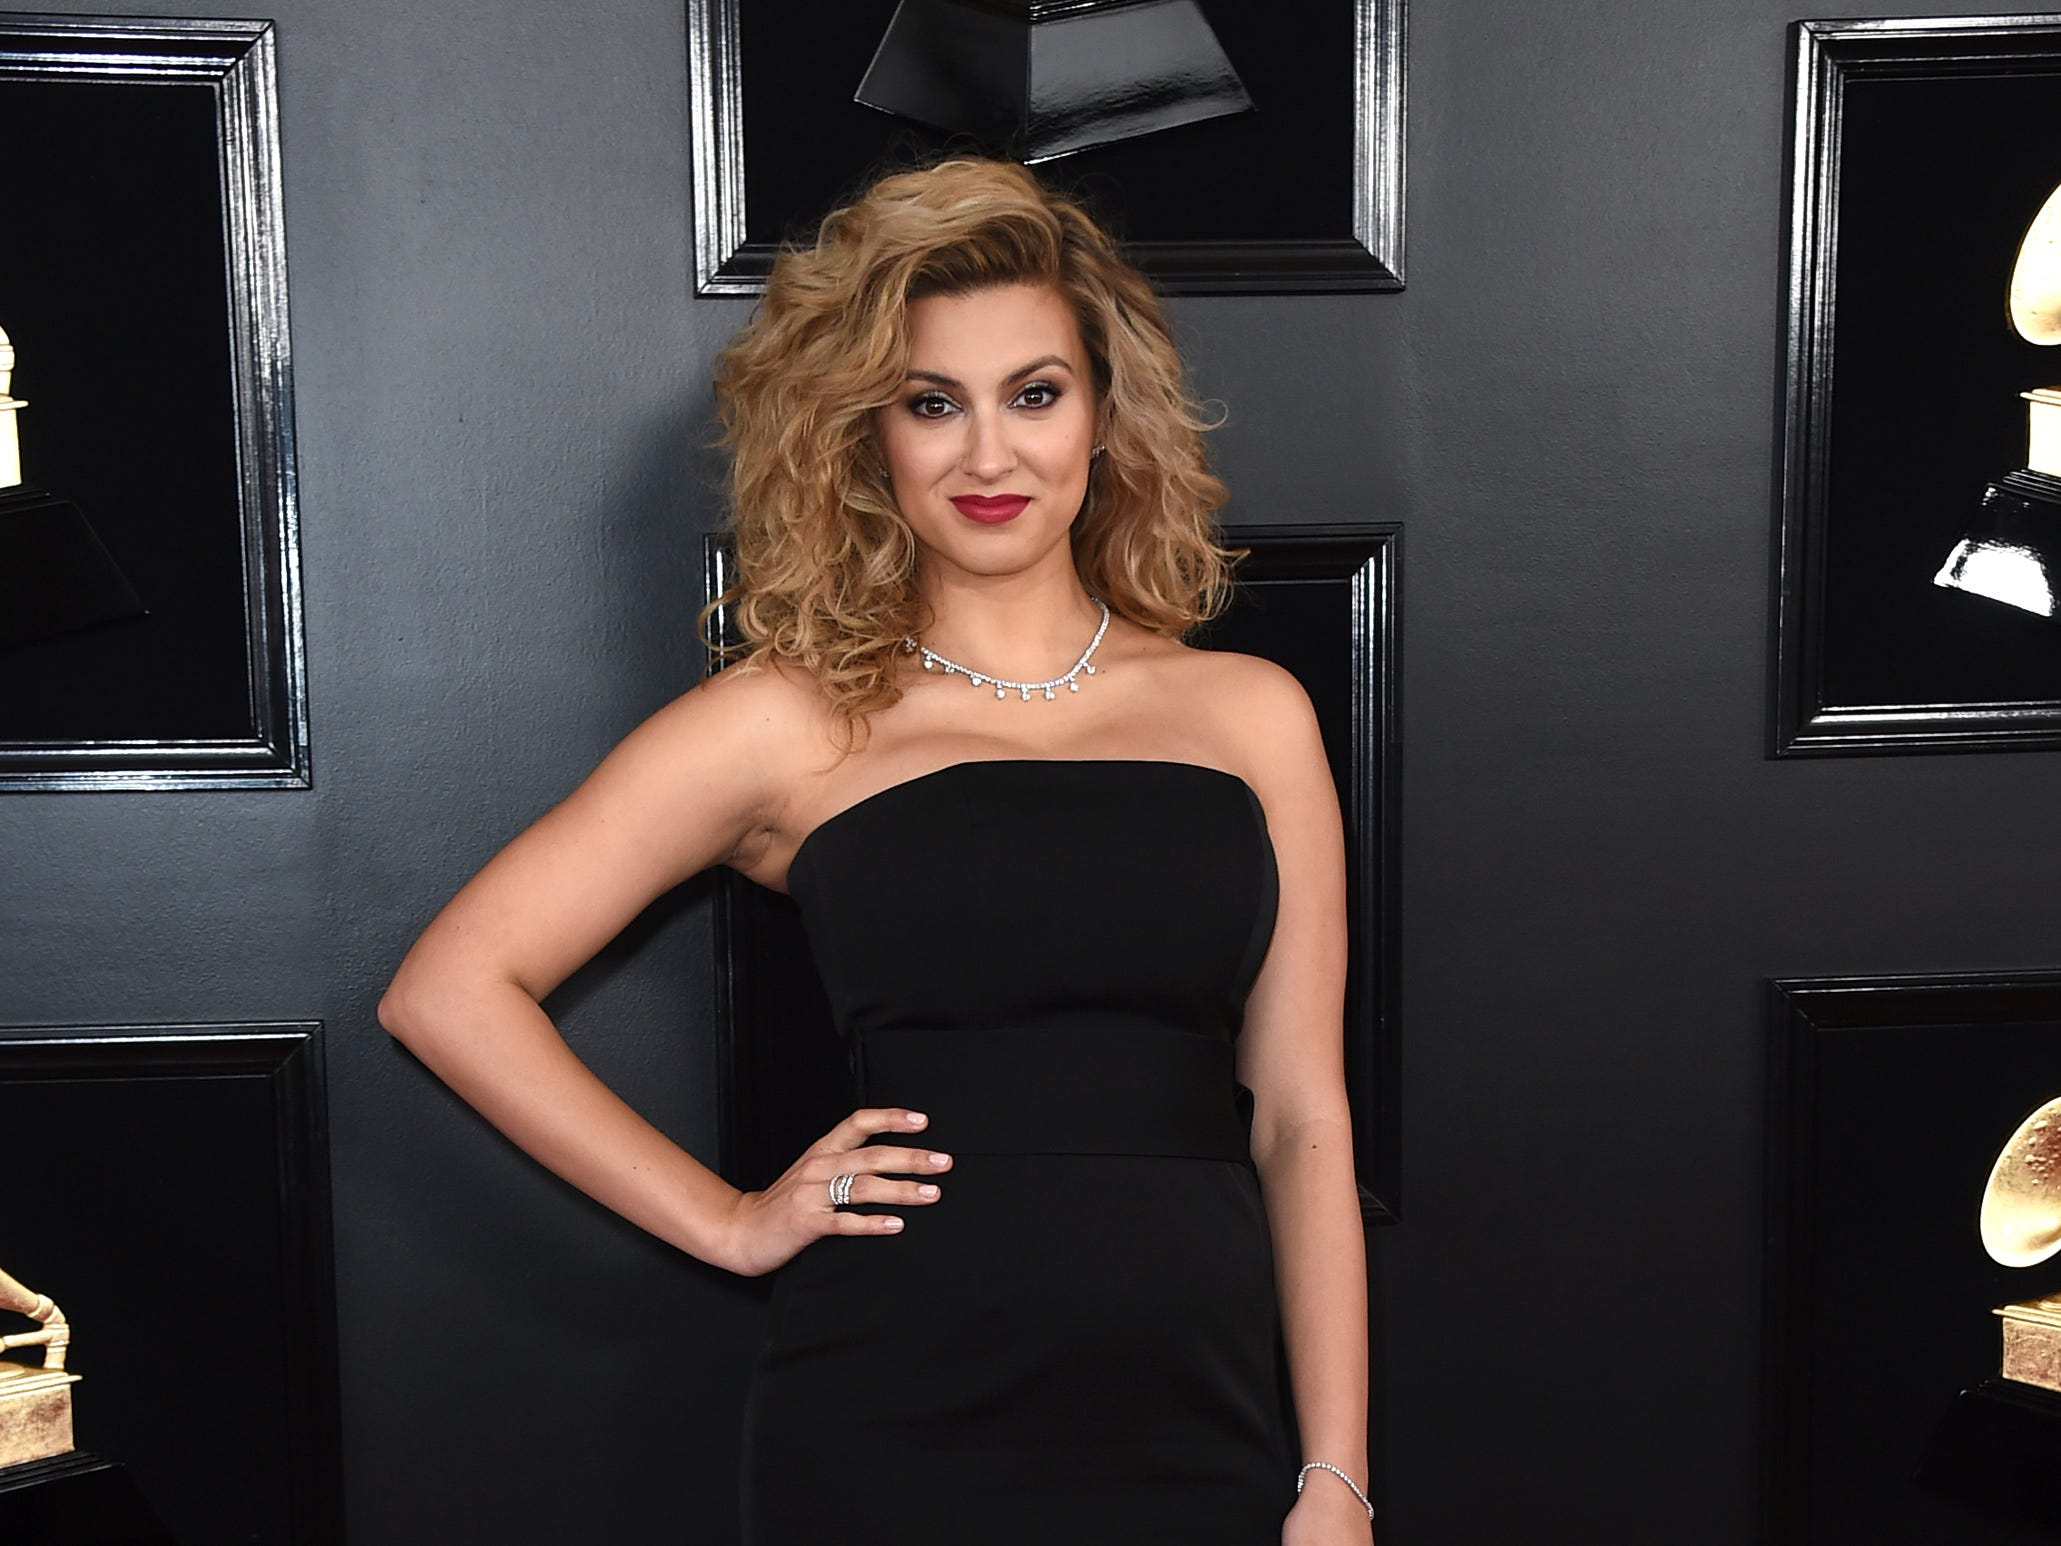 Tori Kelly arrives at the 61st annual Grammy Awards at the Staples Center on Sunday, Feb. 10, 2019, in Los Angeles.